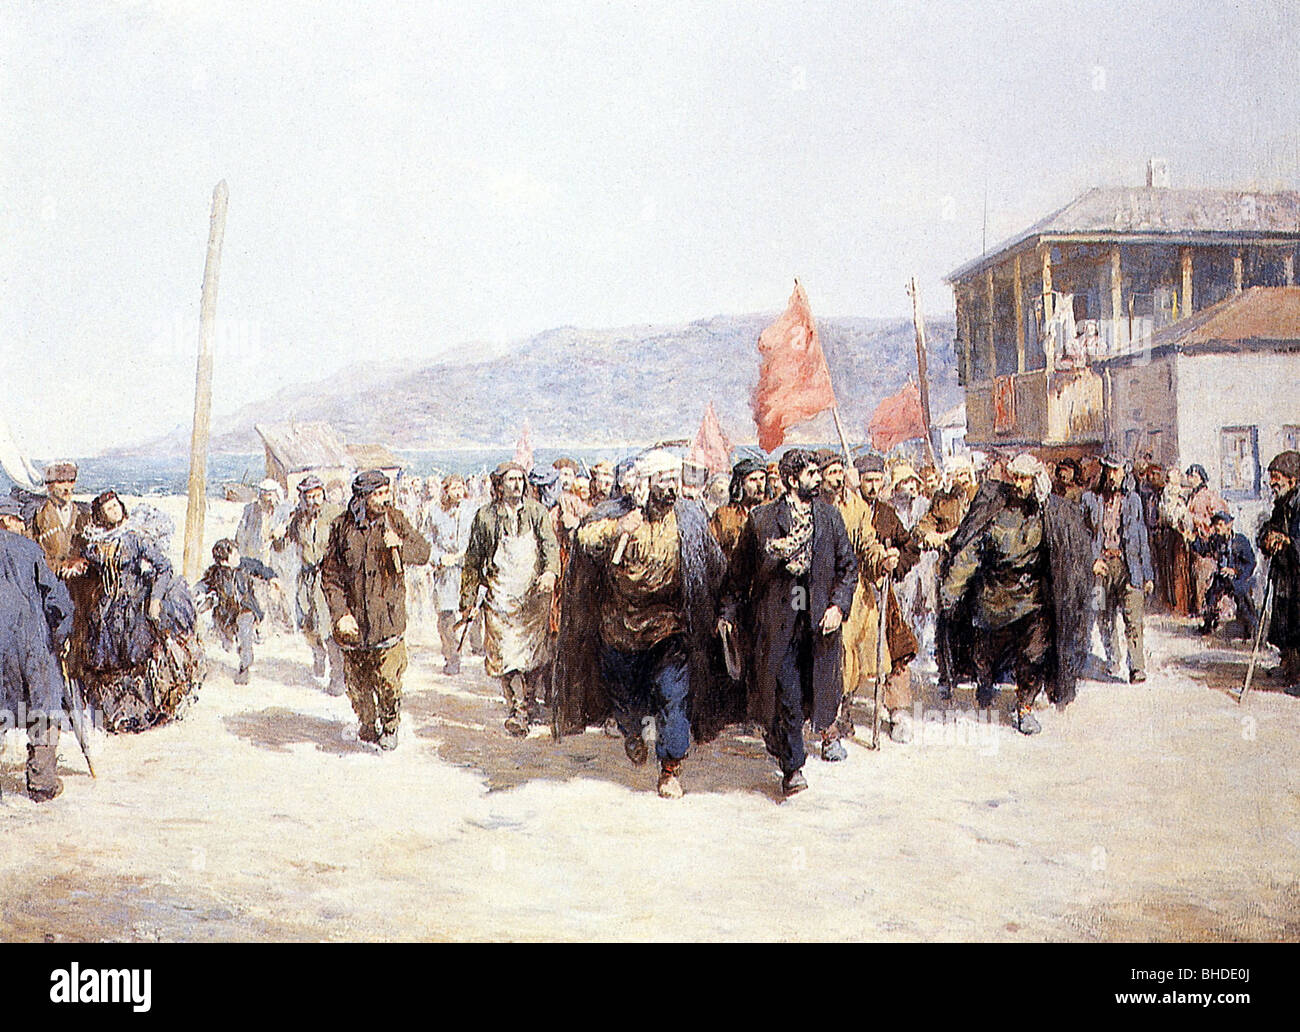 geography / travel, Russia, politics, demonstration of the Communists under Stalin, Batumi, 1912, Additional-Rights - Stock Image